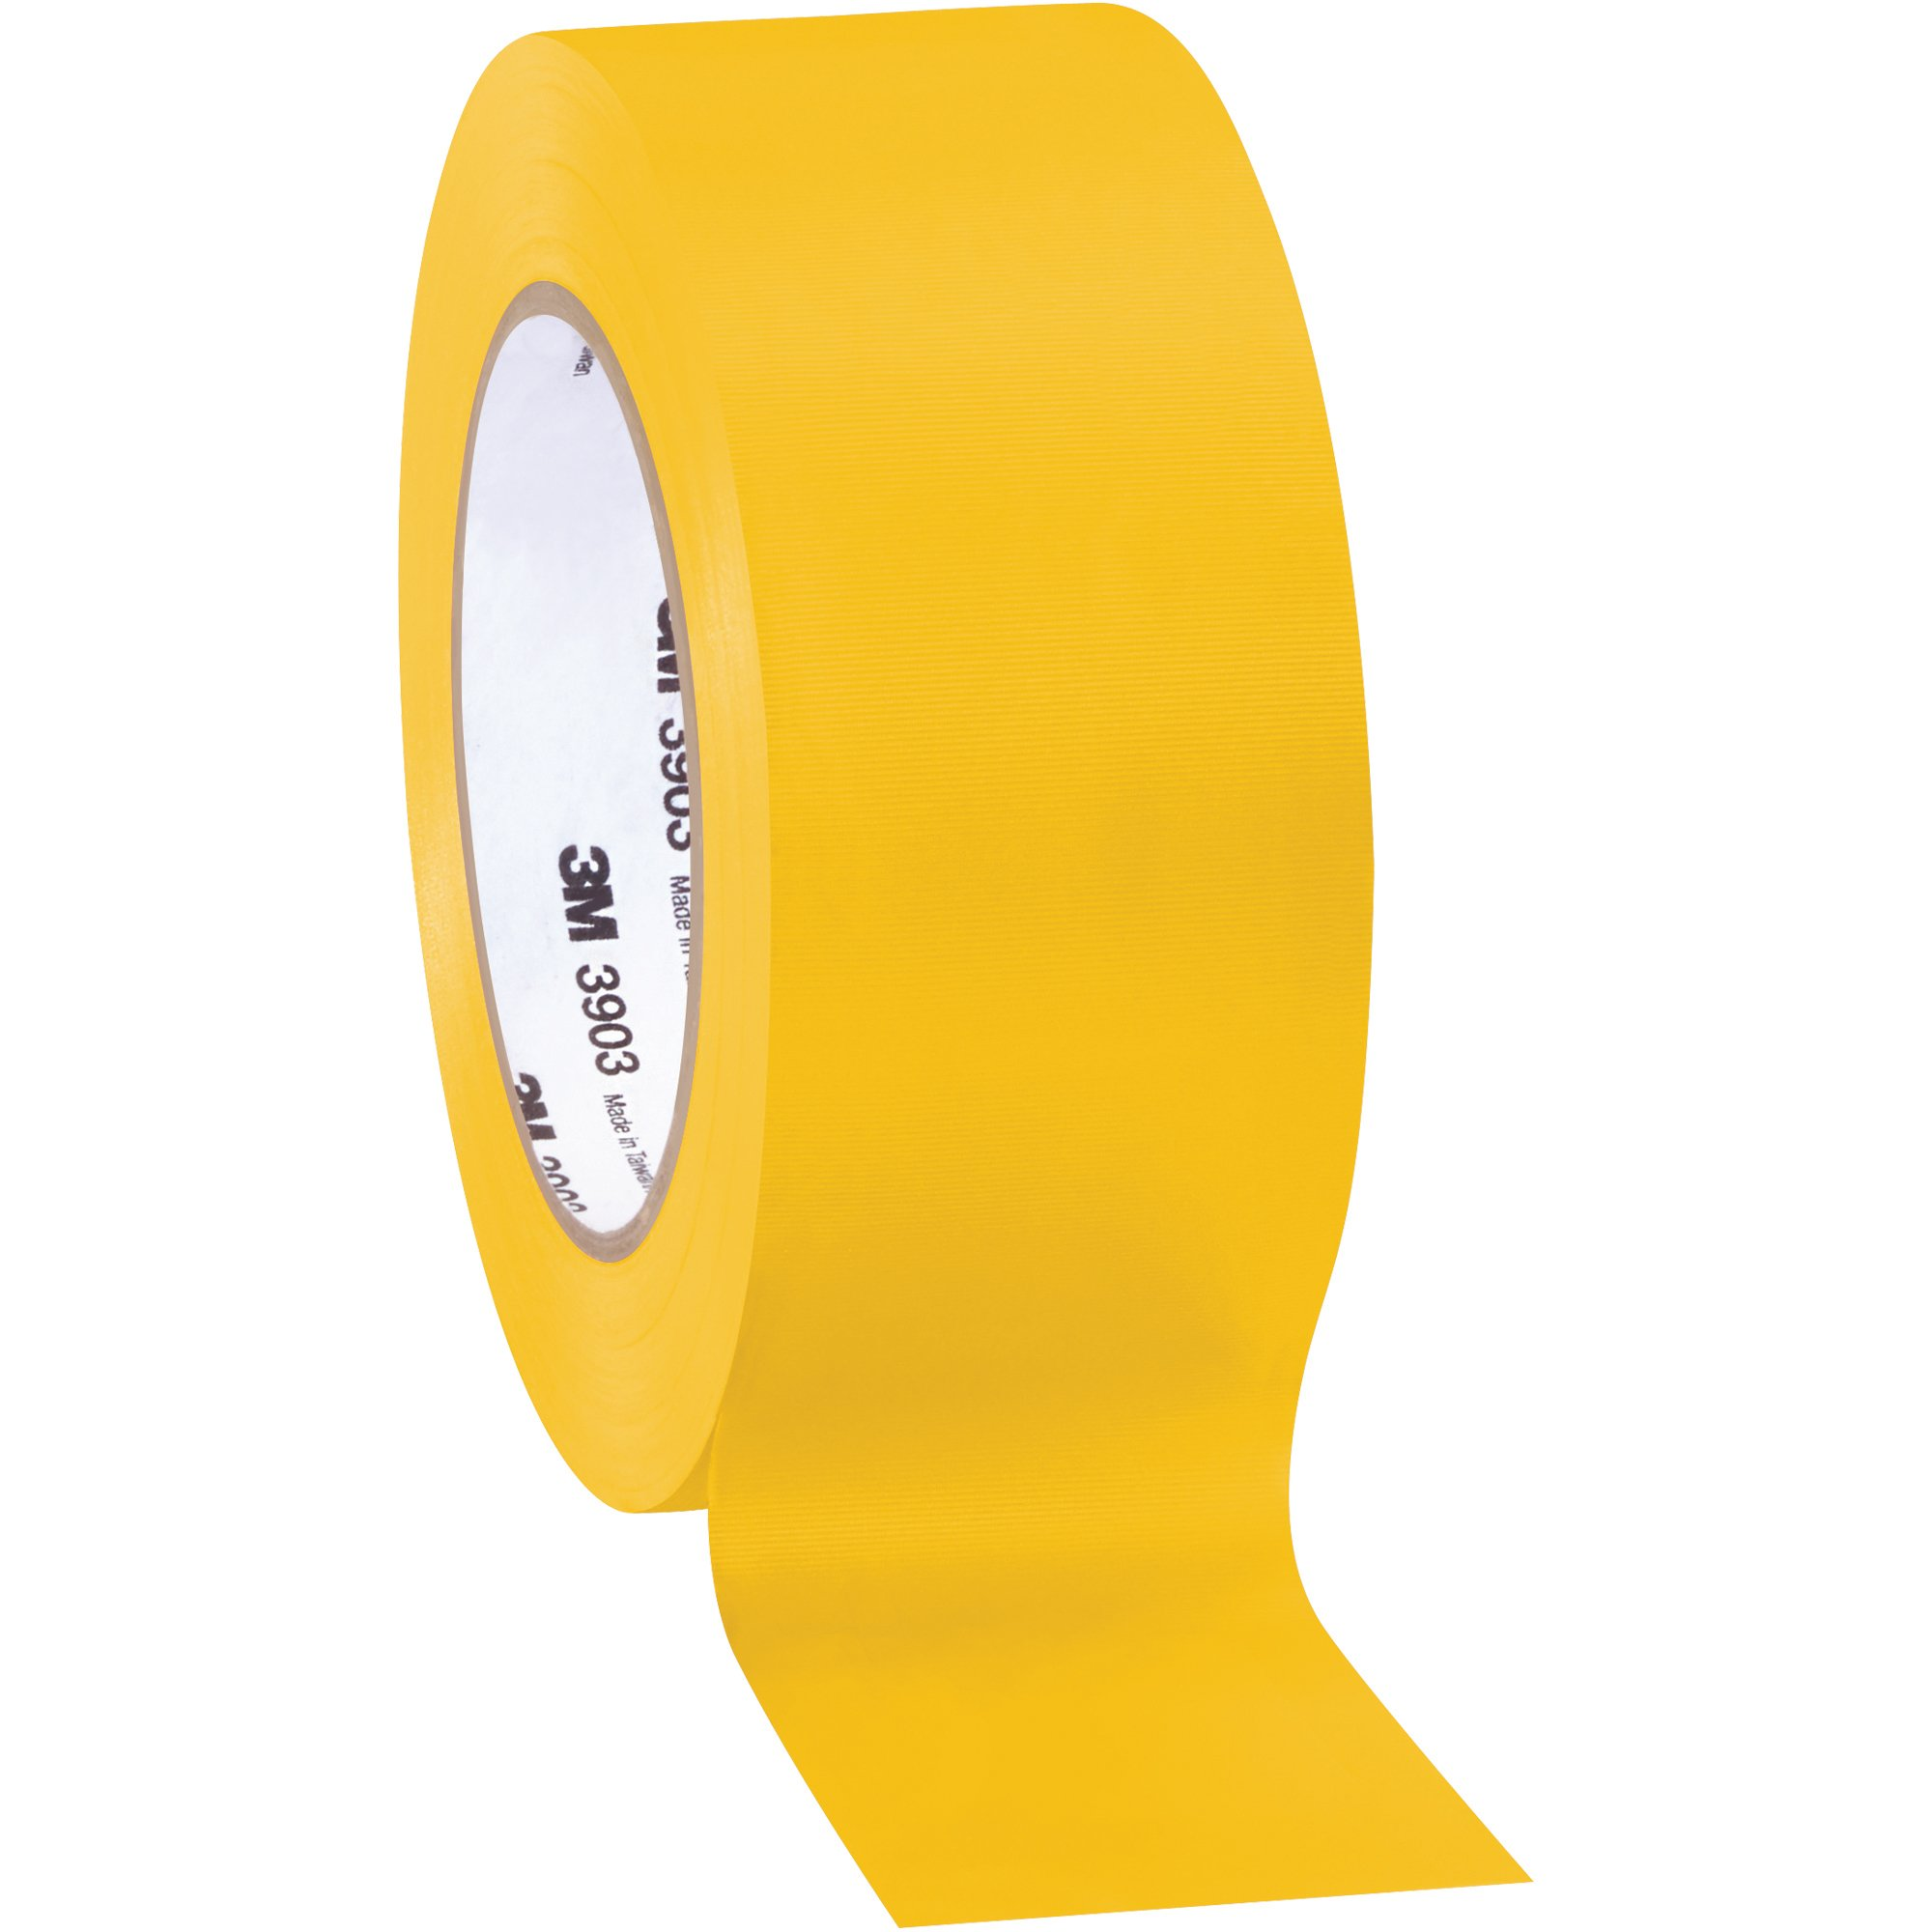 Top Pack Supply 3M 3903 Duct Tape, 6.3 Mil, 2'' x 50 yds. Yellow (Case of 3)